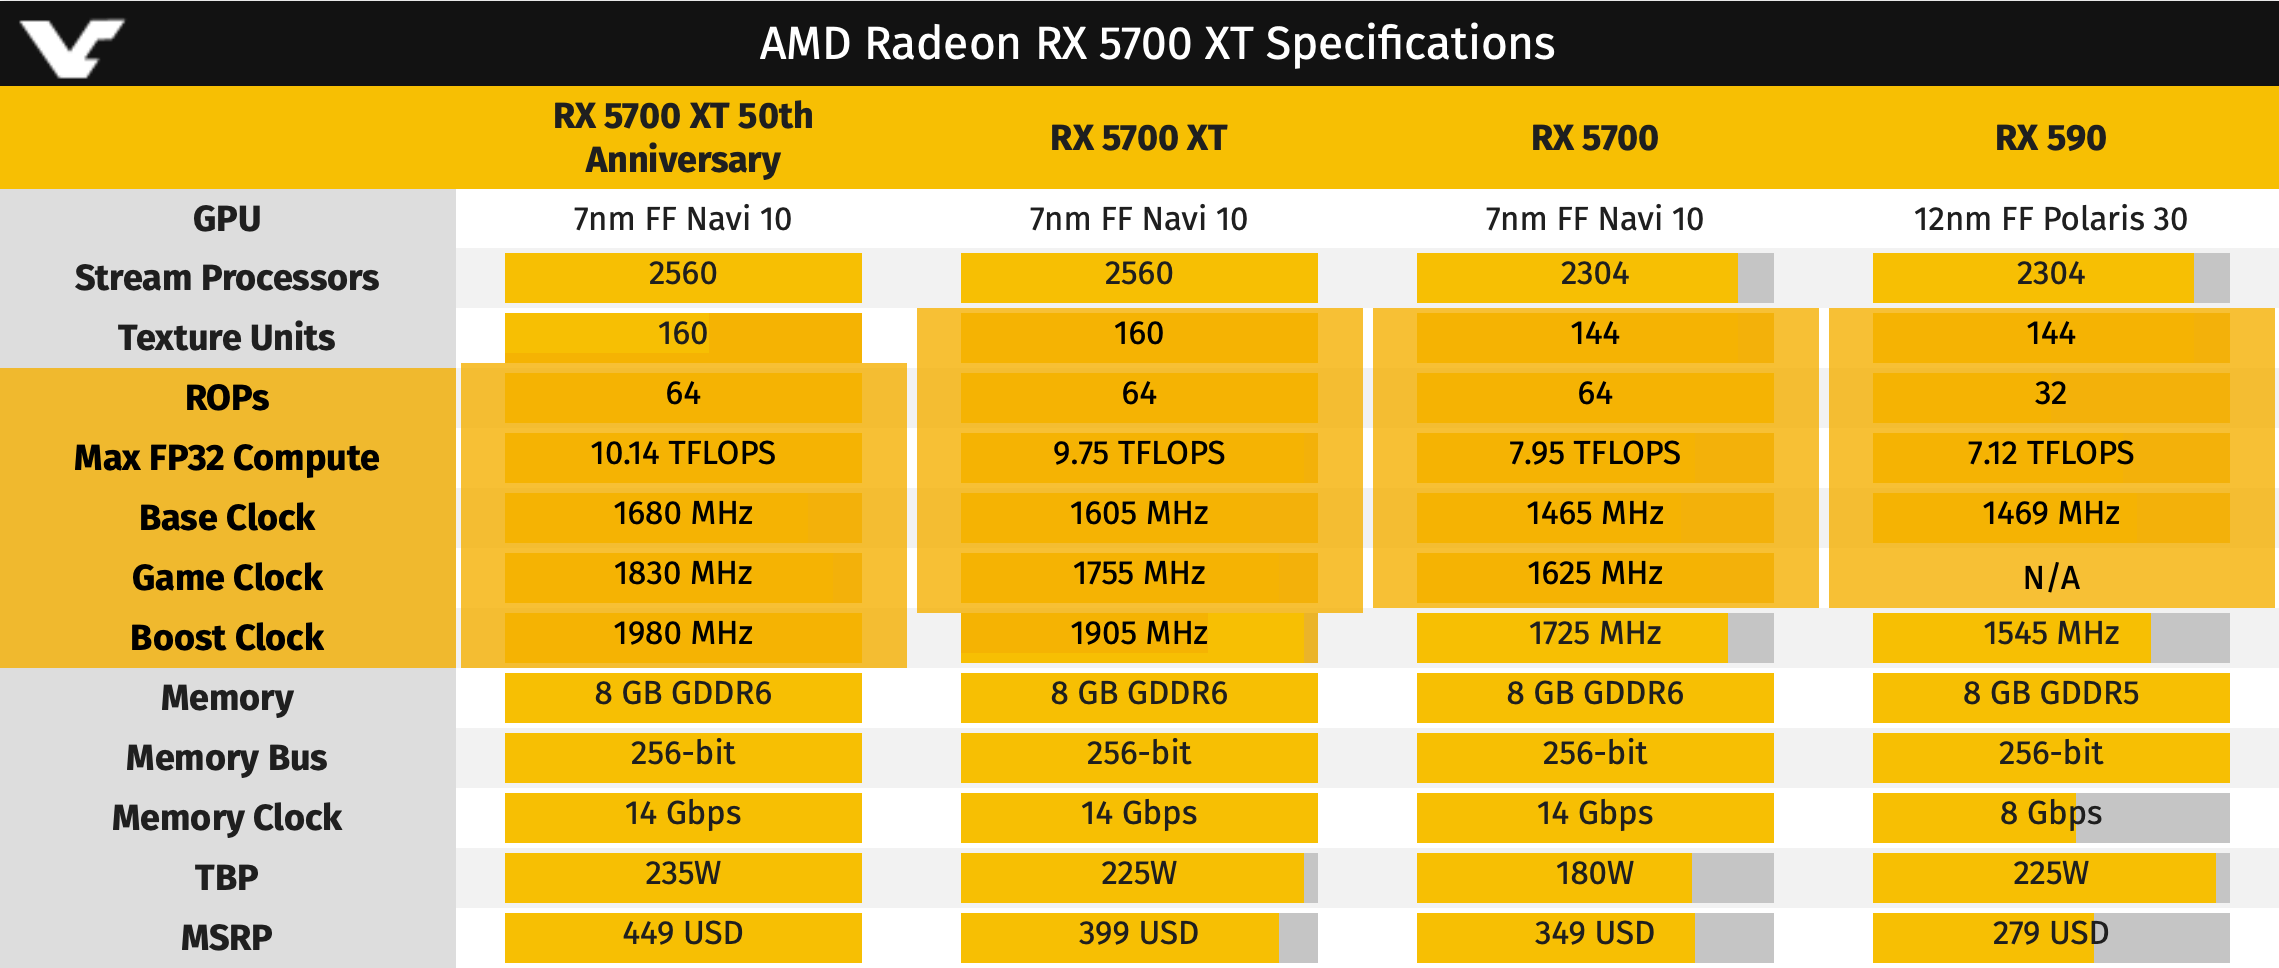 AMD slashes prices of Radeon RX 5700 series ahead of release